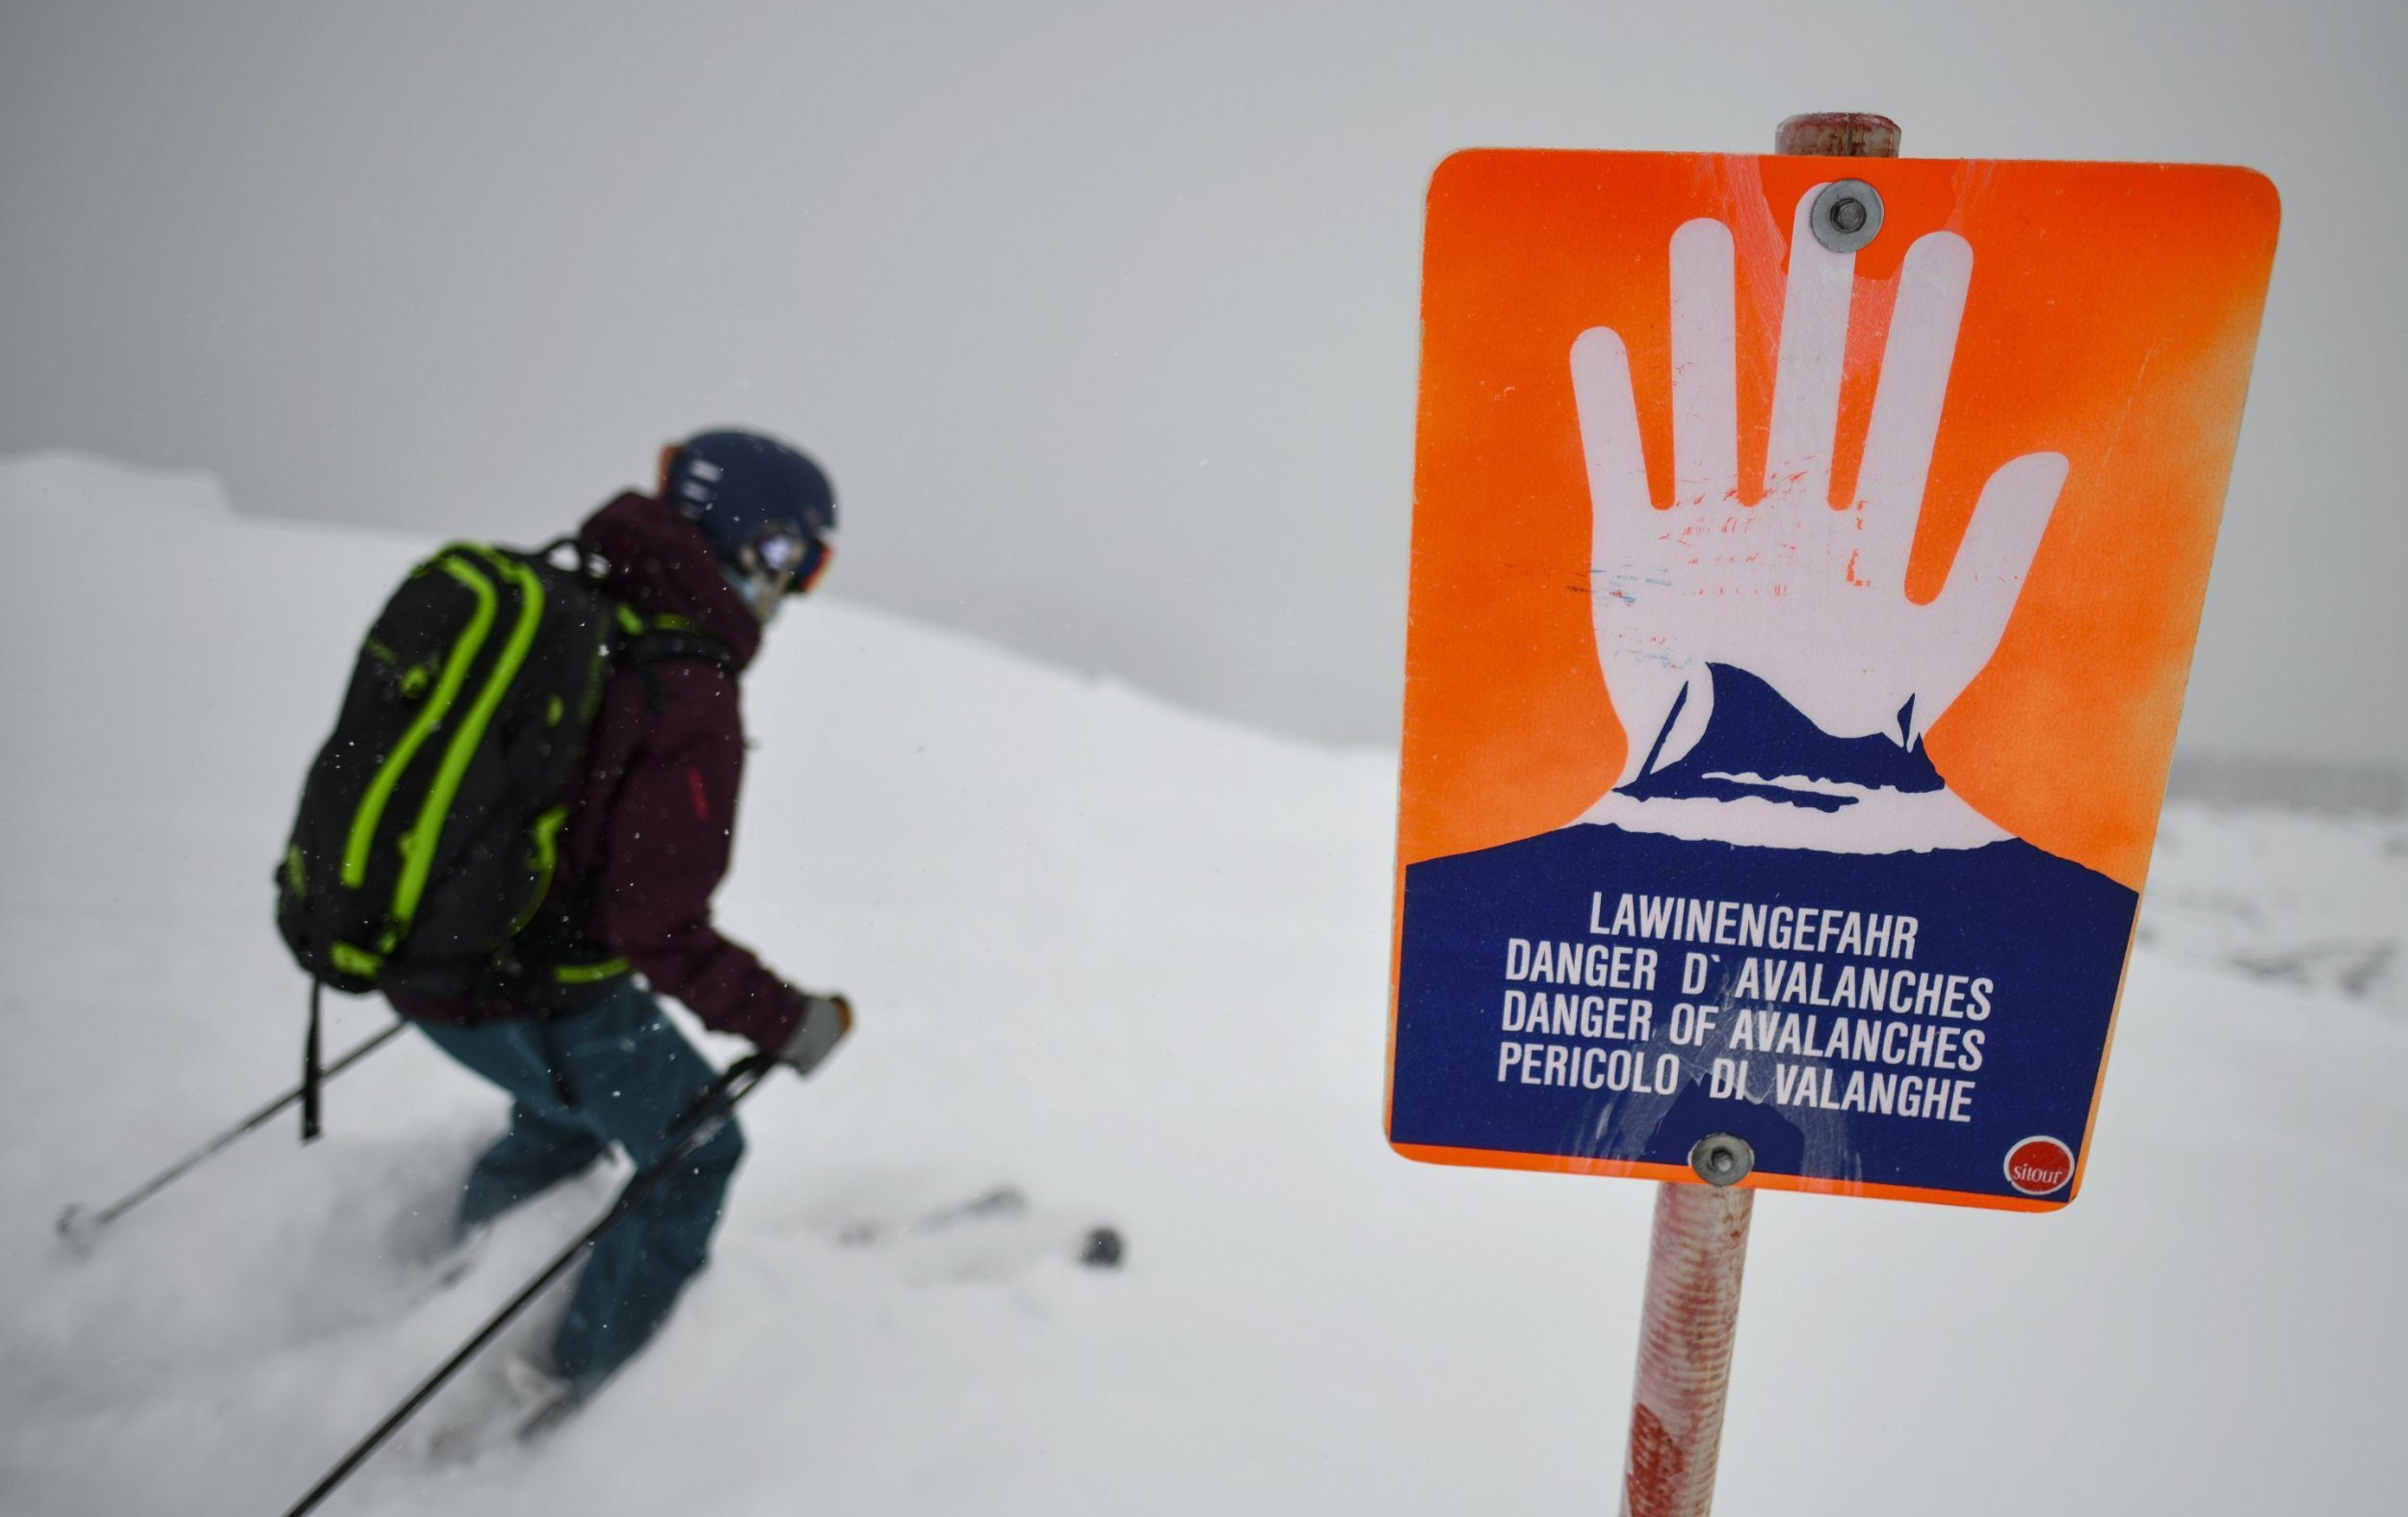 LERMOOS, AUSTRIA - JANUARY 10: A backcountry skier passes an avalanche warning sign at the sidecountry boundary of a ski resort on January 10, 2019 in Lermoos, Austria. Exceptionally high levels of snow have closed roads and ski resorts, triggered avalanches and cut villages off across southern Germany and much of Austria. (Photo by Philipp Guelland/Getty Images)